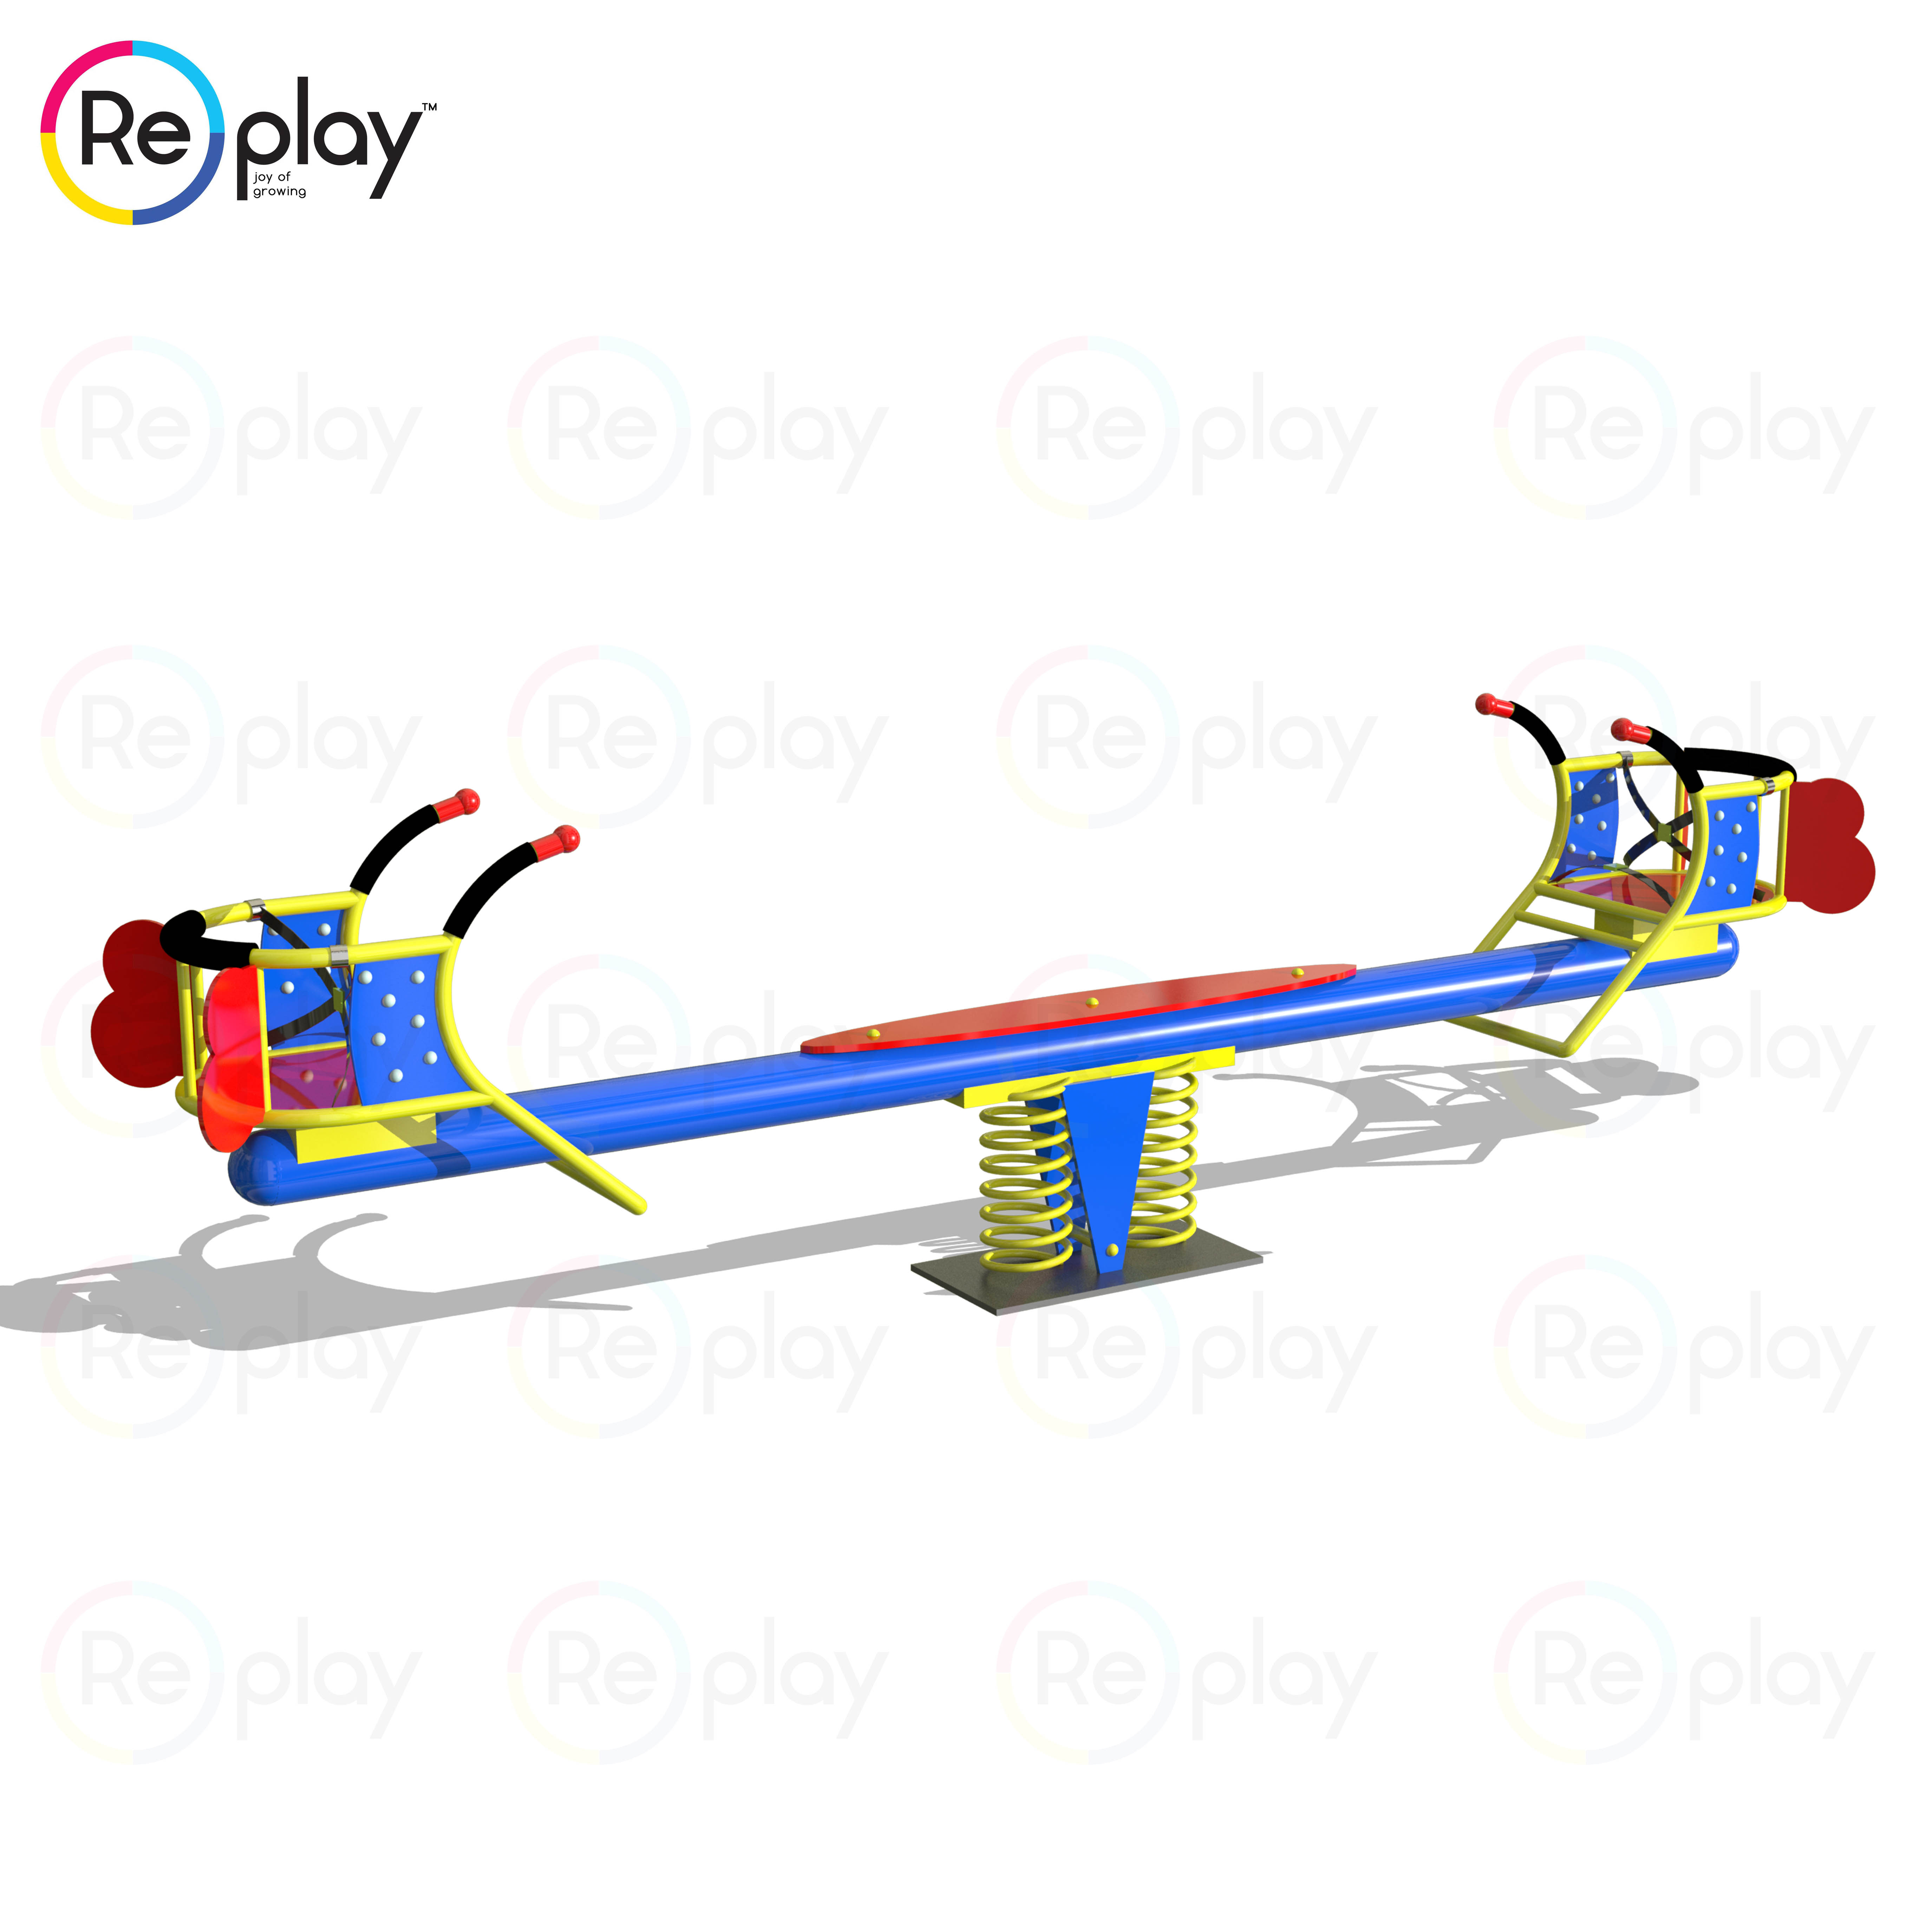 Replay - See-Saw1